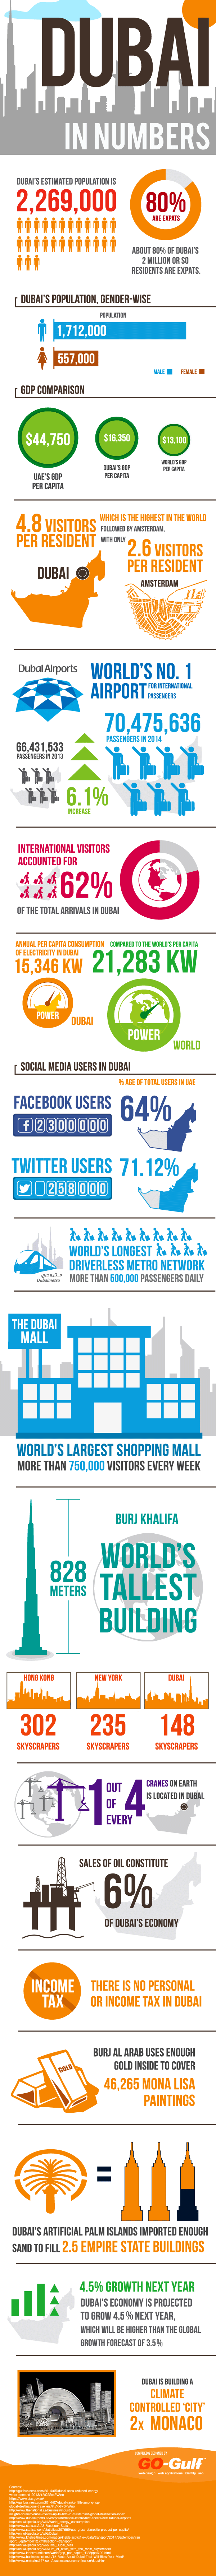 Dubai Interesting Statistics and Facts